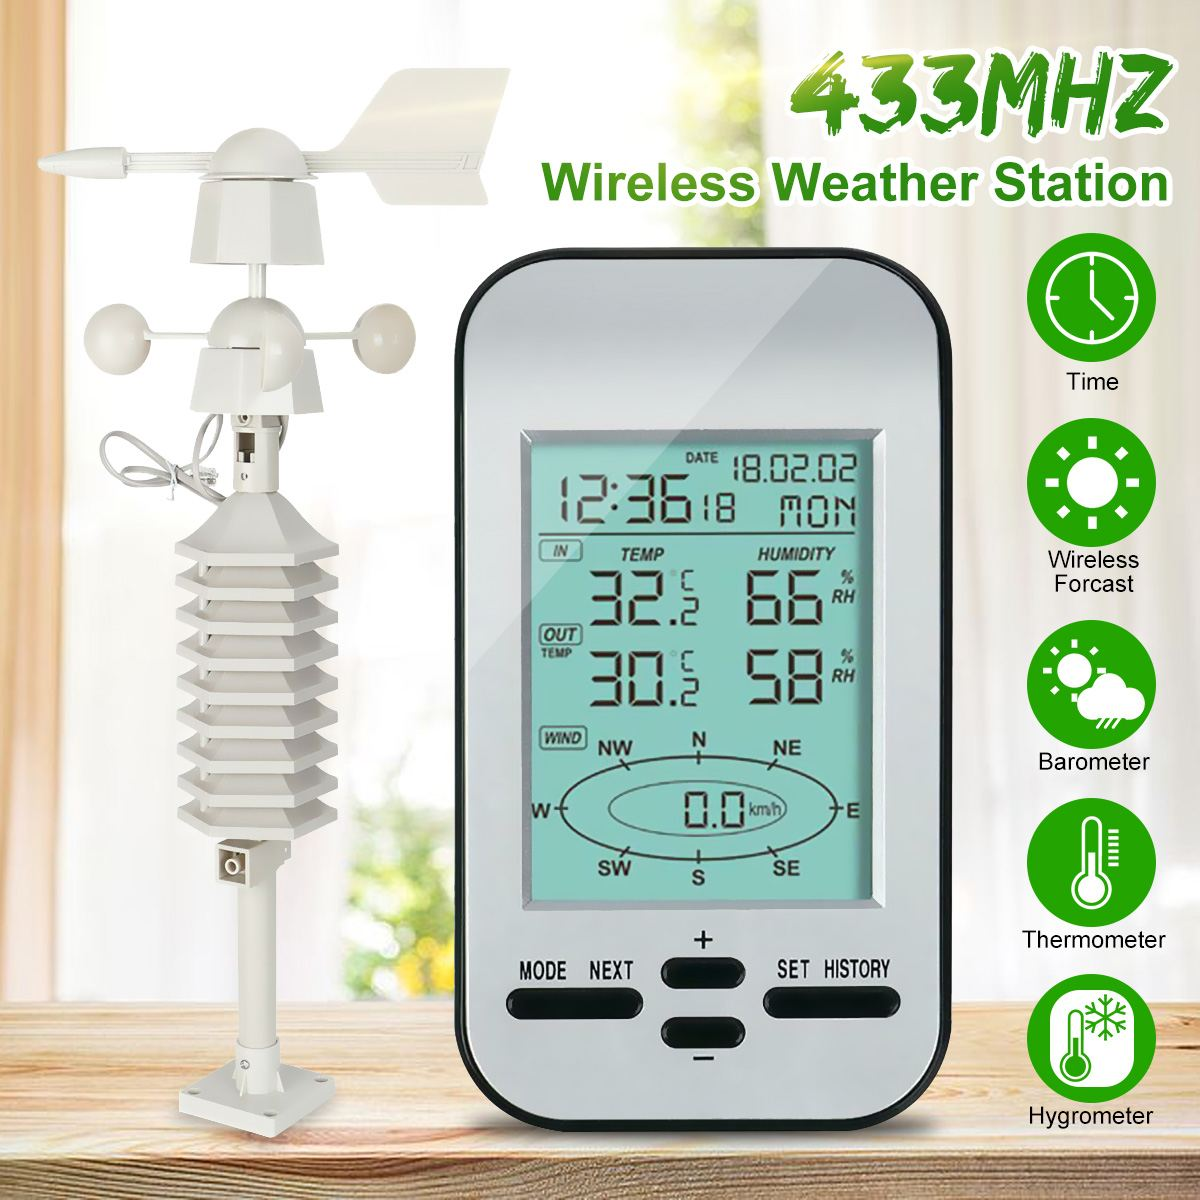 Professional RF 433MHz Wireless Weather Station Clock With Wind Speed And Direction Sensor Transmission Range Up To 100 Meters